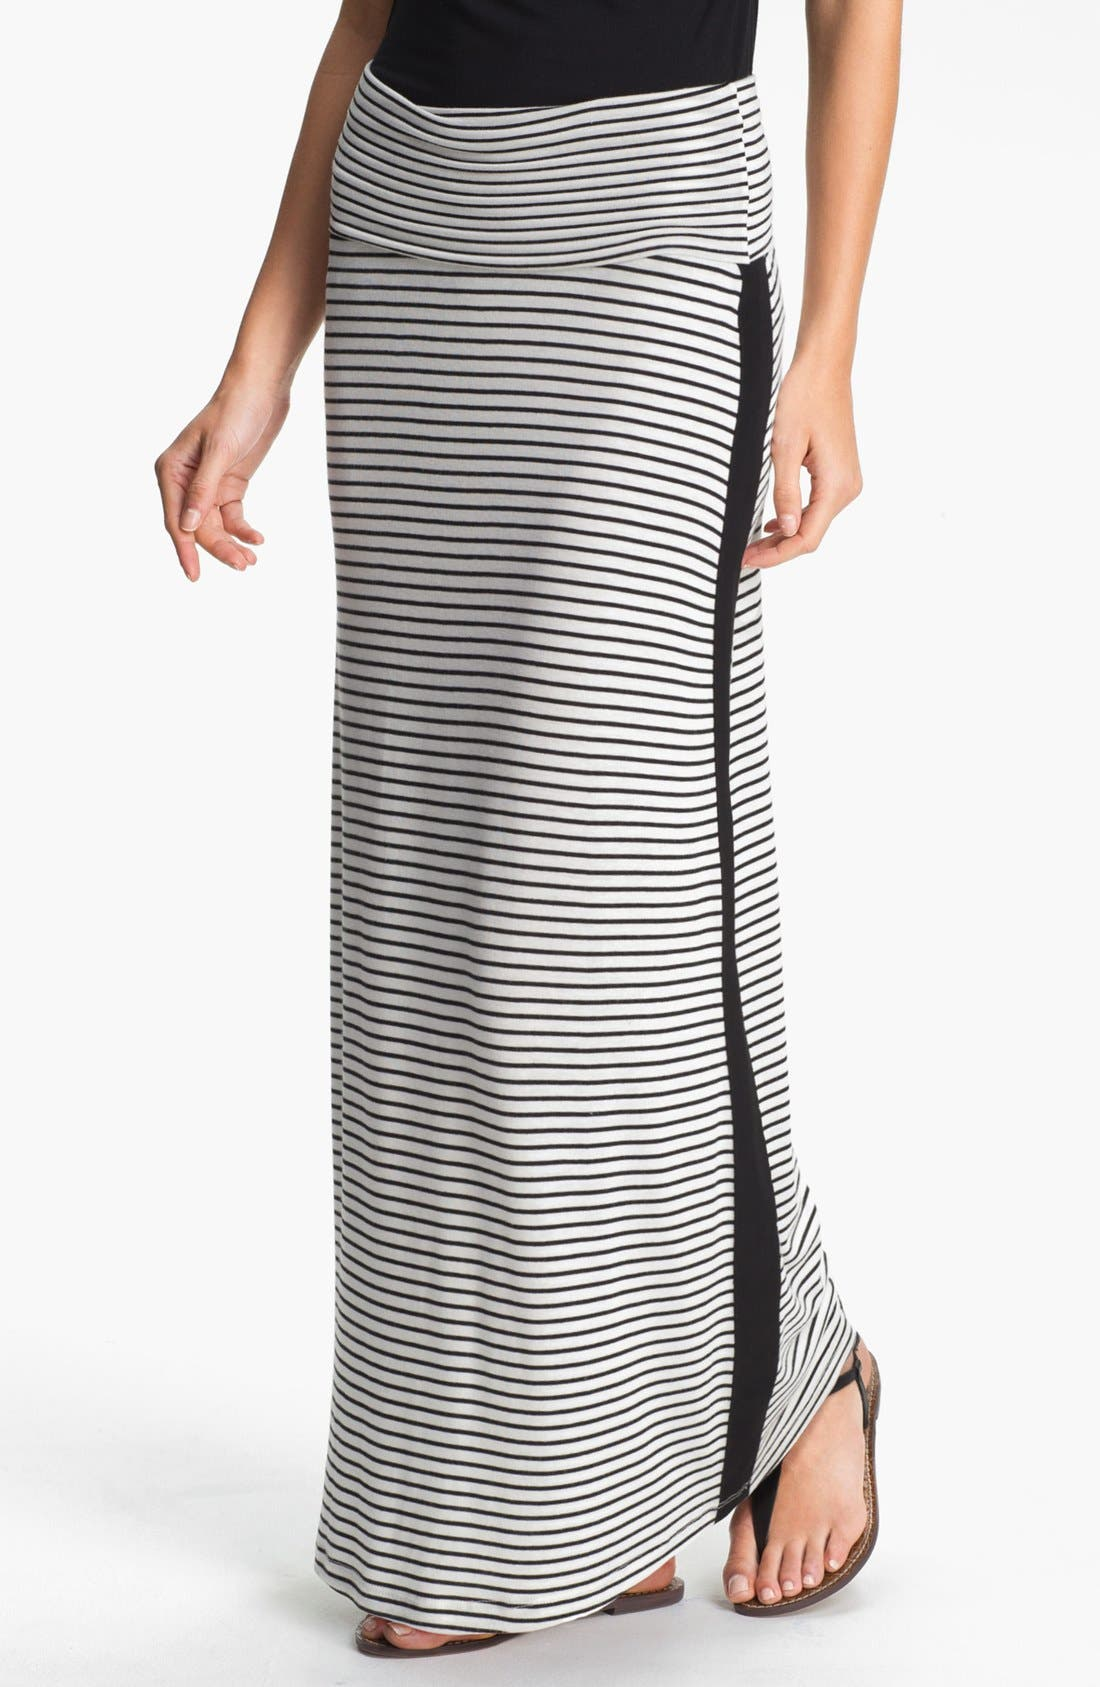 Main Image - Everleigh Tuxedo Stripe Maxi Skirt (Petite)